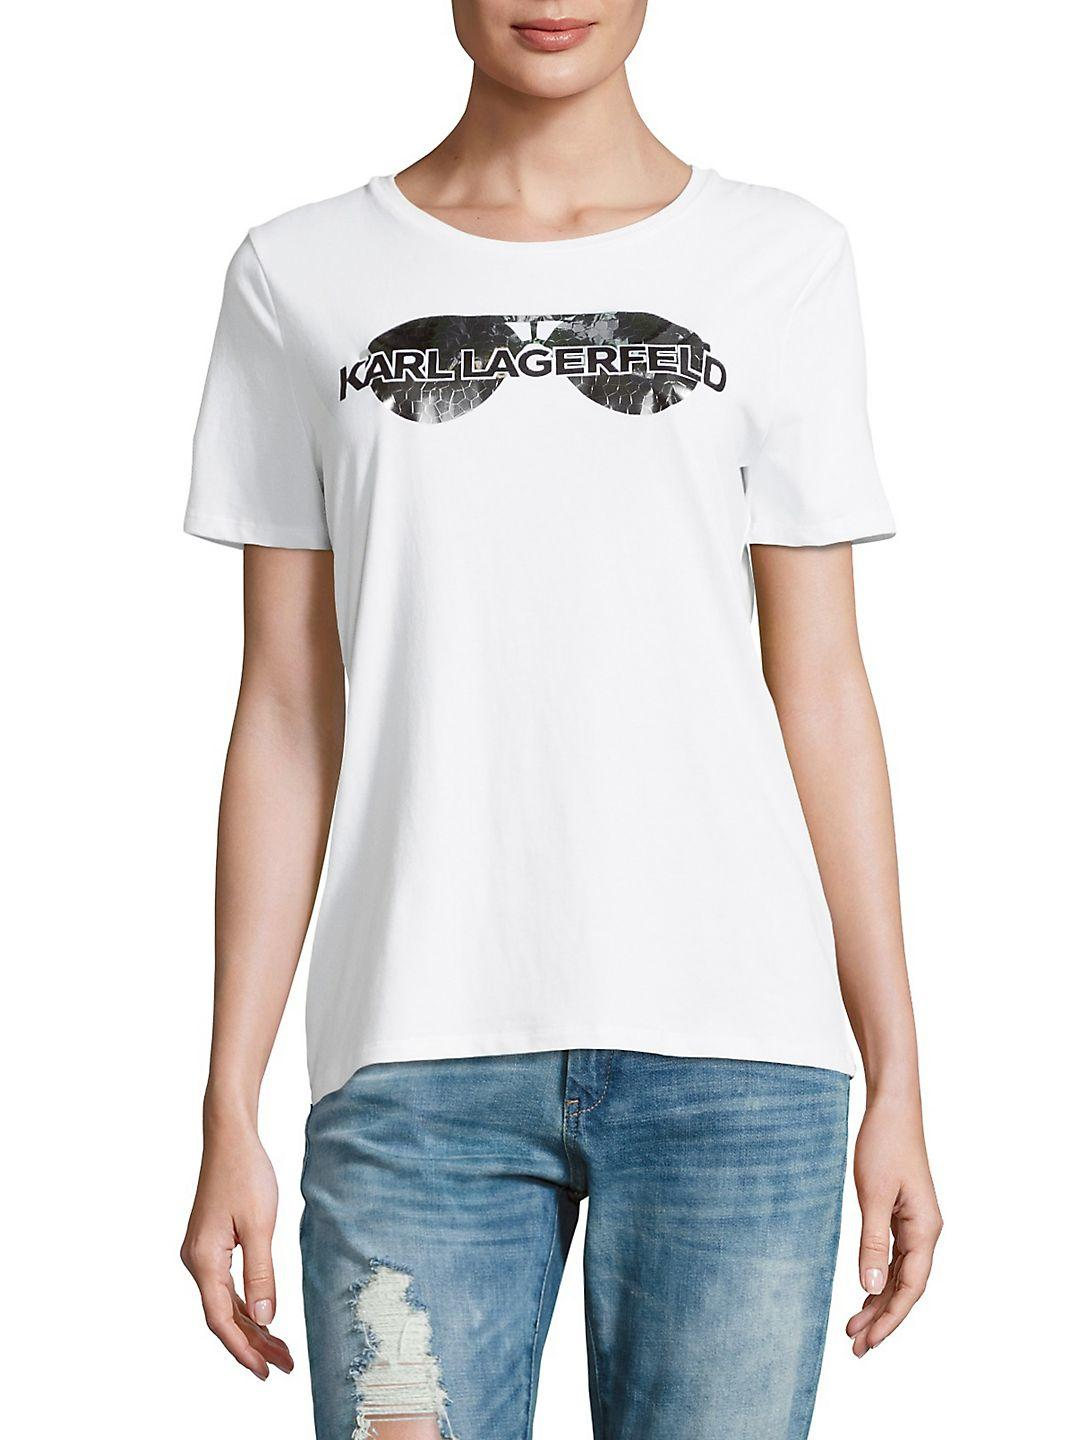 Karl Lagerfeld Cotton Crackle Sunglass Tee in Soft White (White)